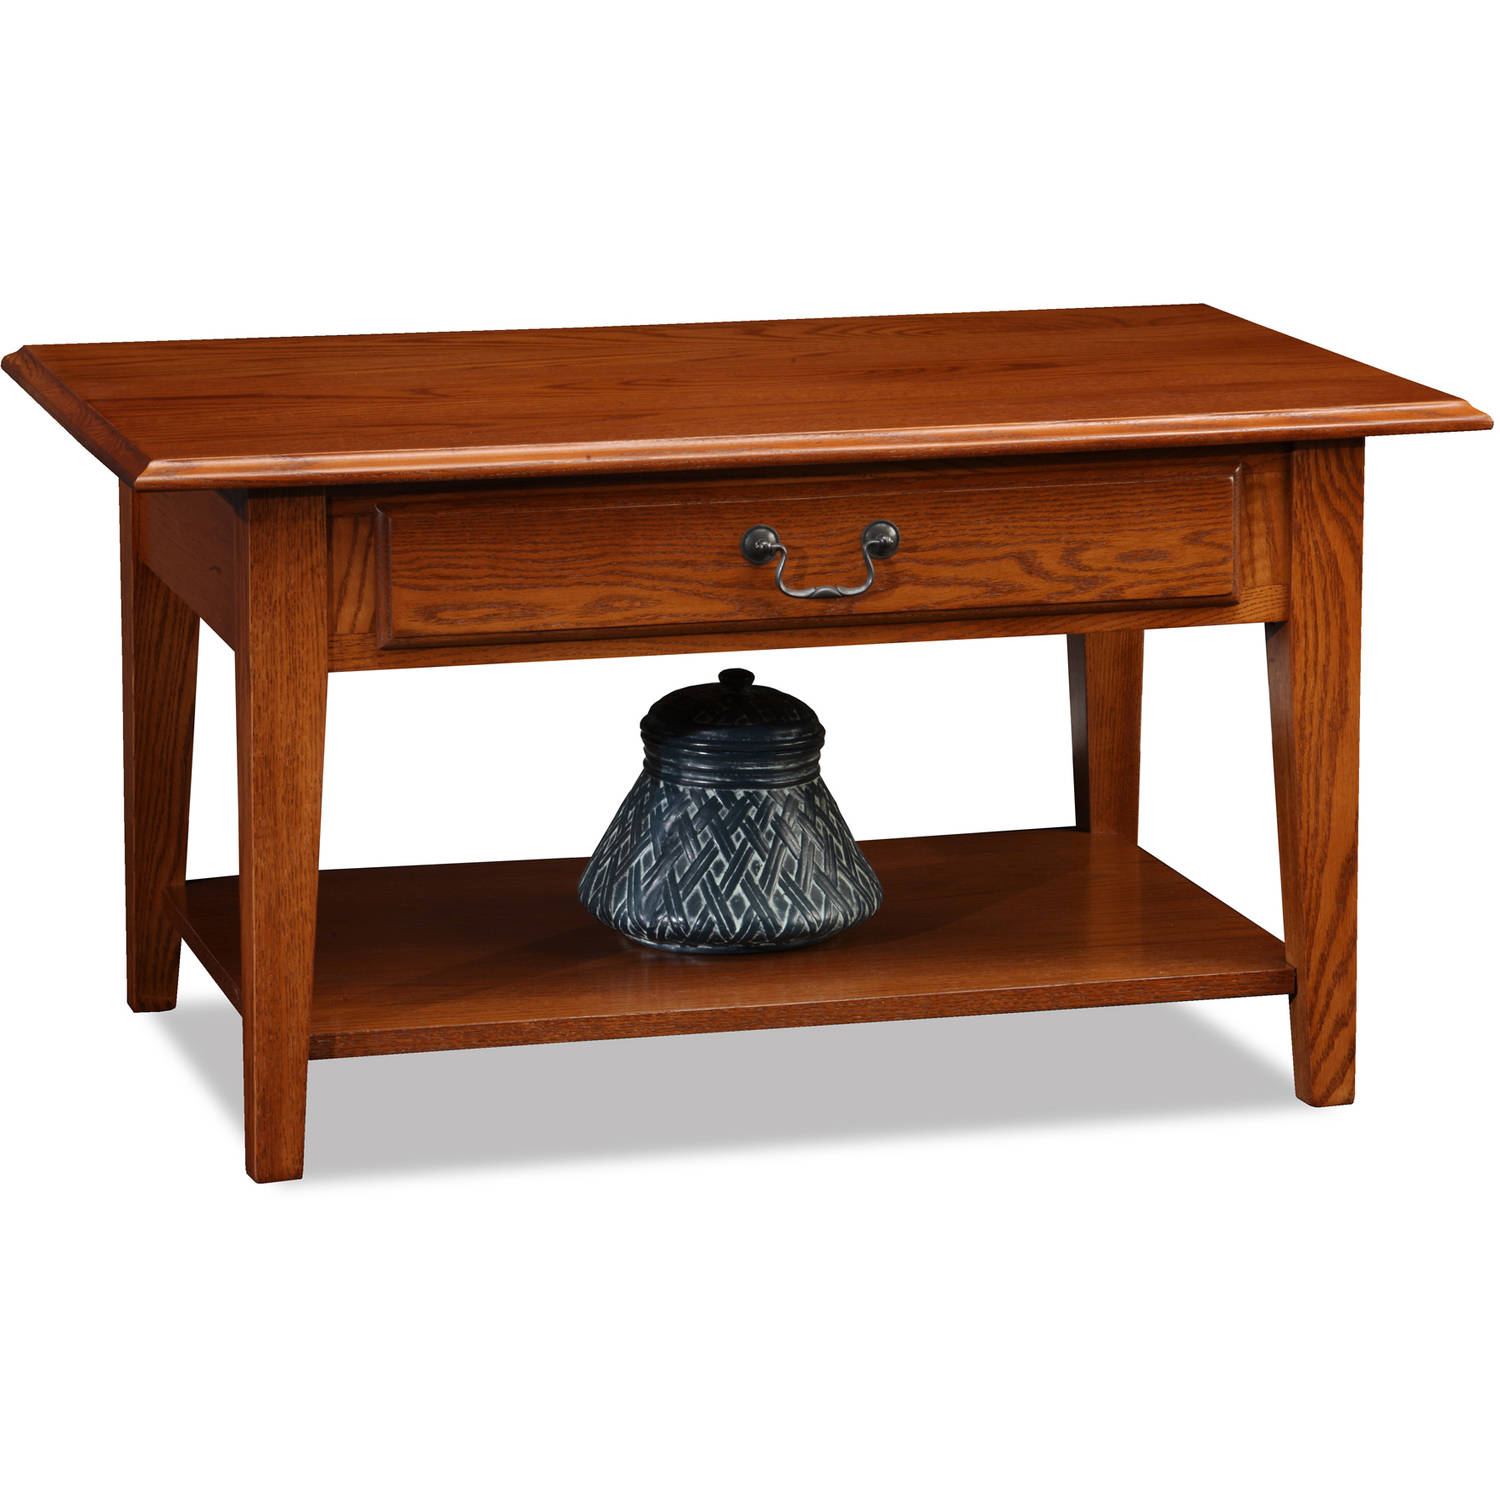 Leick Home Shaker Style Wood Drawer Coffee Table, Multiple Colors